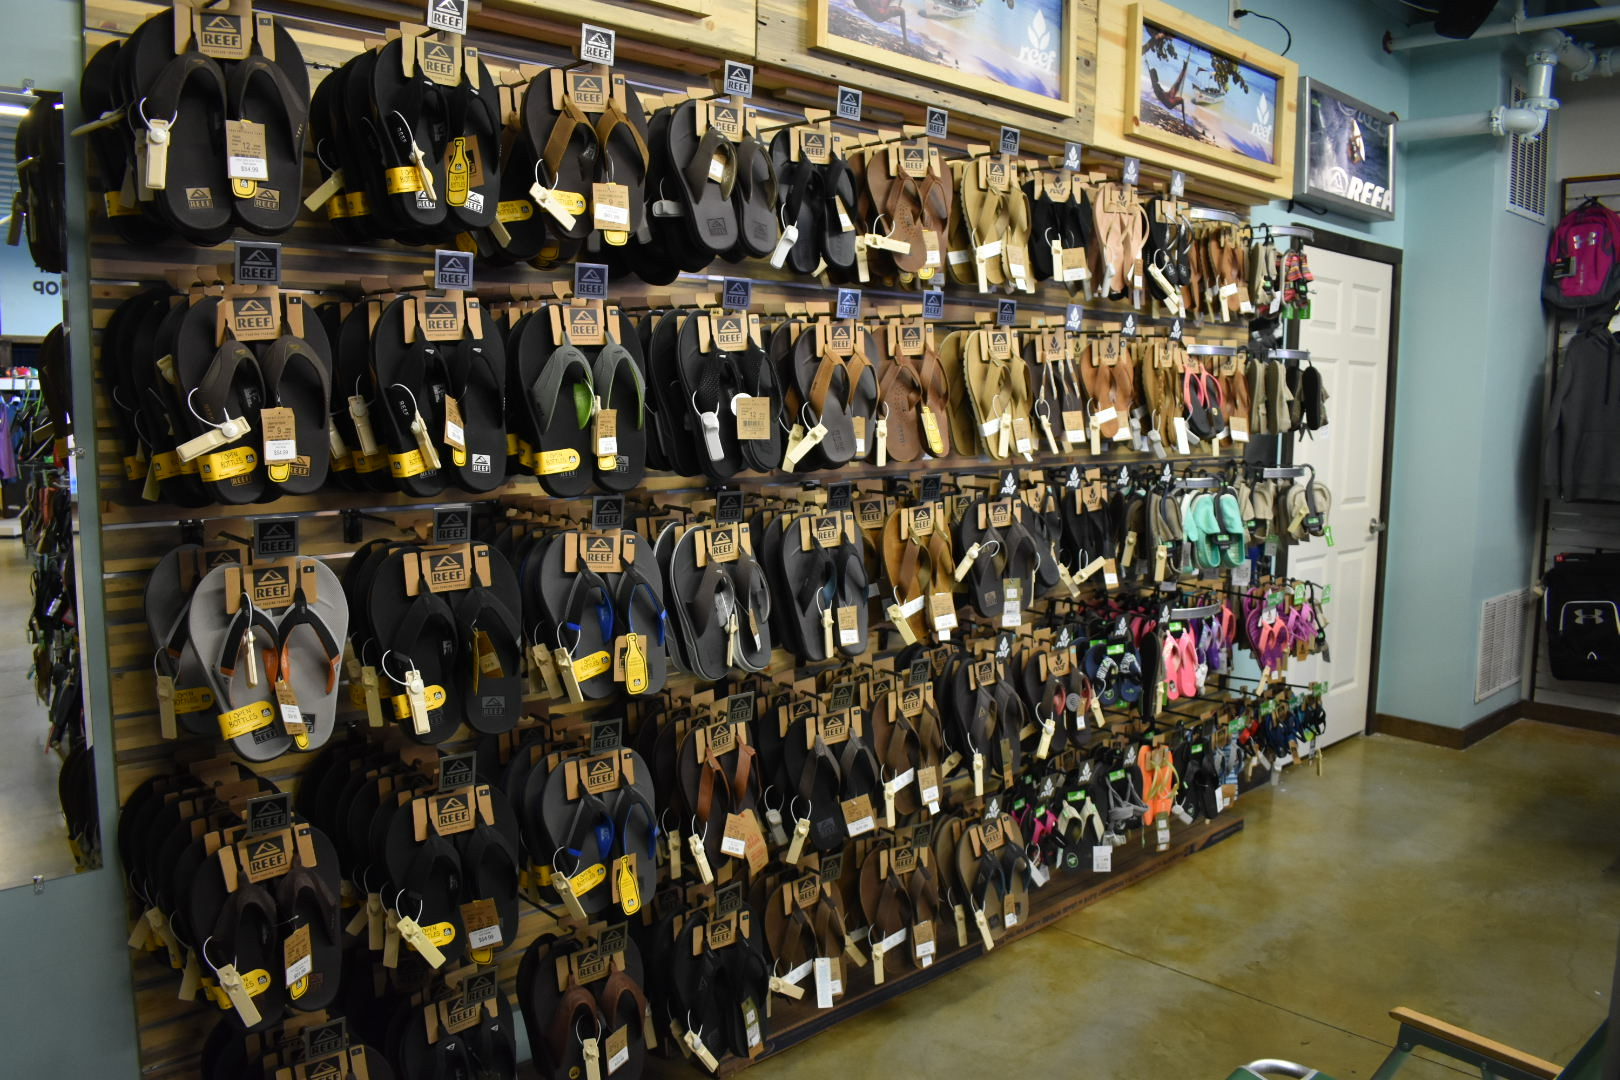 THOUSANDS OF SHOES….. - FROM BRANDS LIKE REEF, SANUK, RAINBOW, AND UNDER ARMOUR